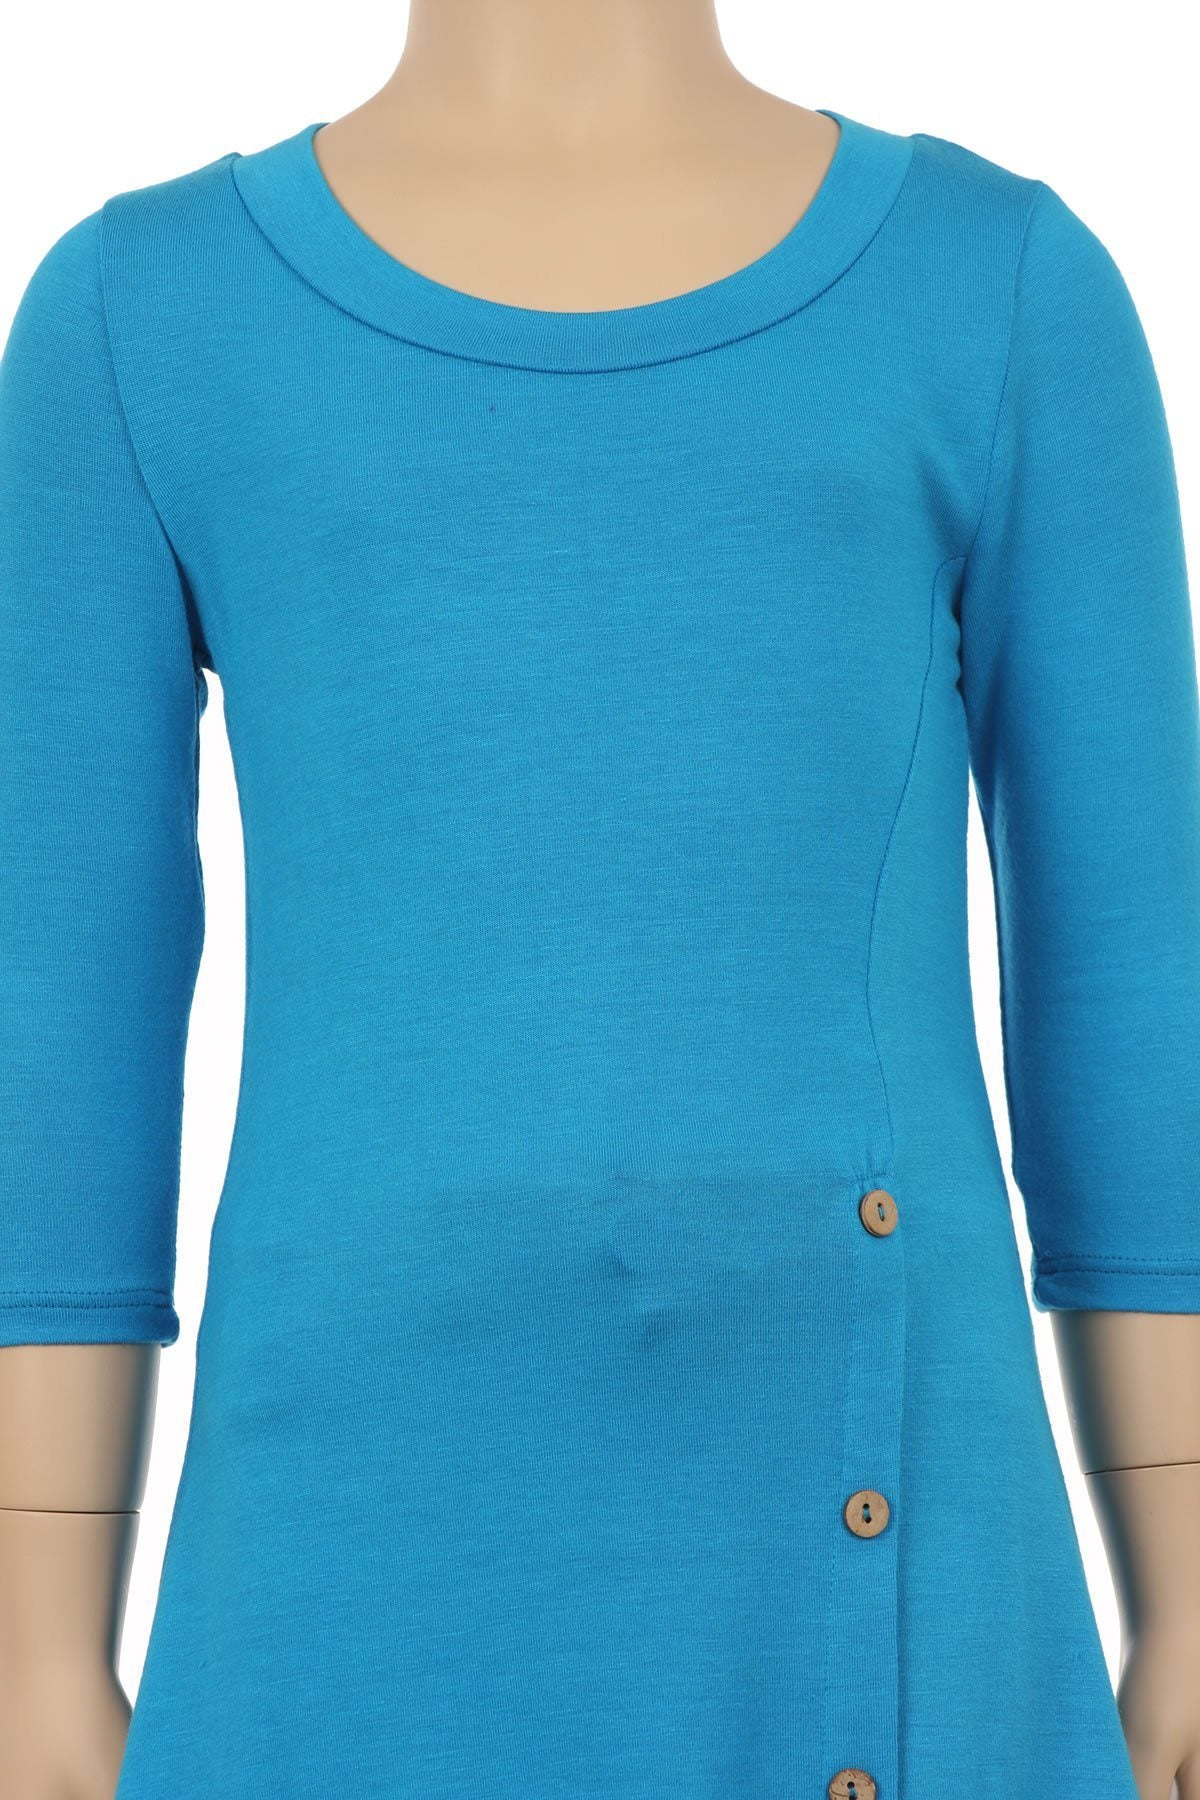 Tunic Top For Girls Asymmetric Hem Side Buttons Teal Blue: S/M/L/XL